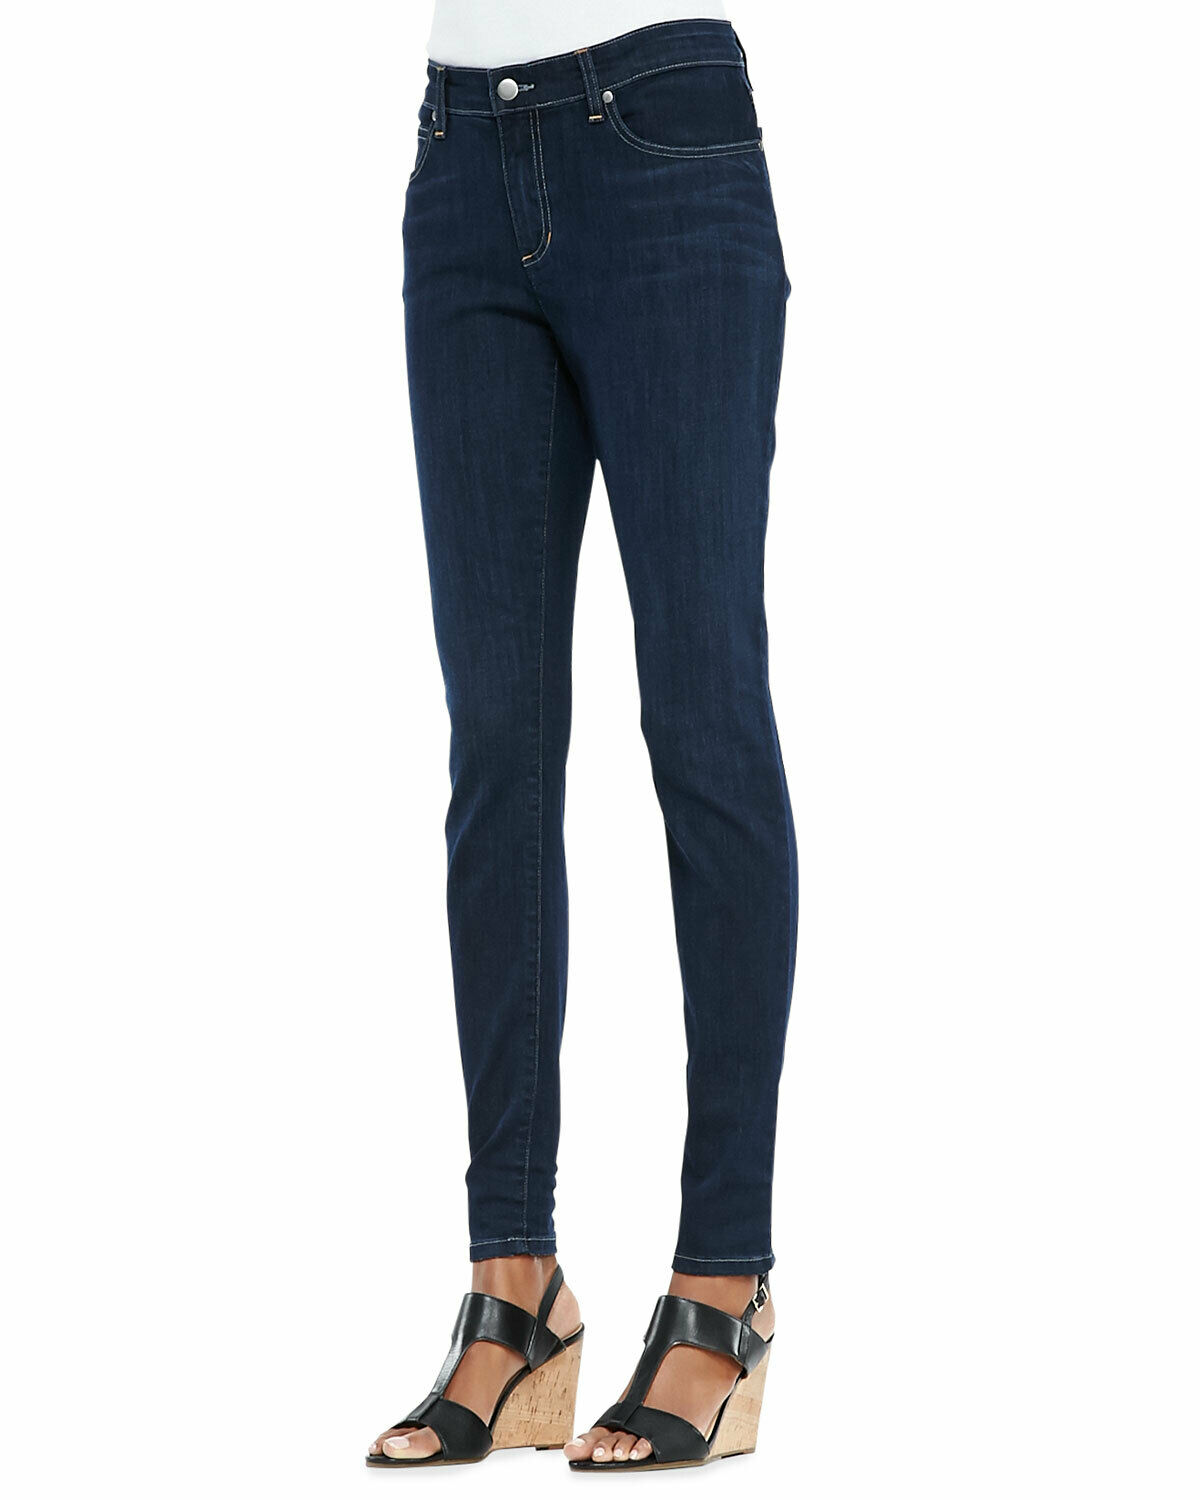 Eileen Fisher Washed Indigo Organic Cotton Soft Stretch Skinny Jeans 22w